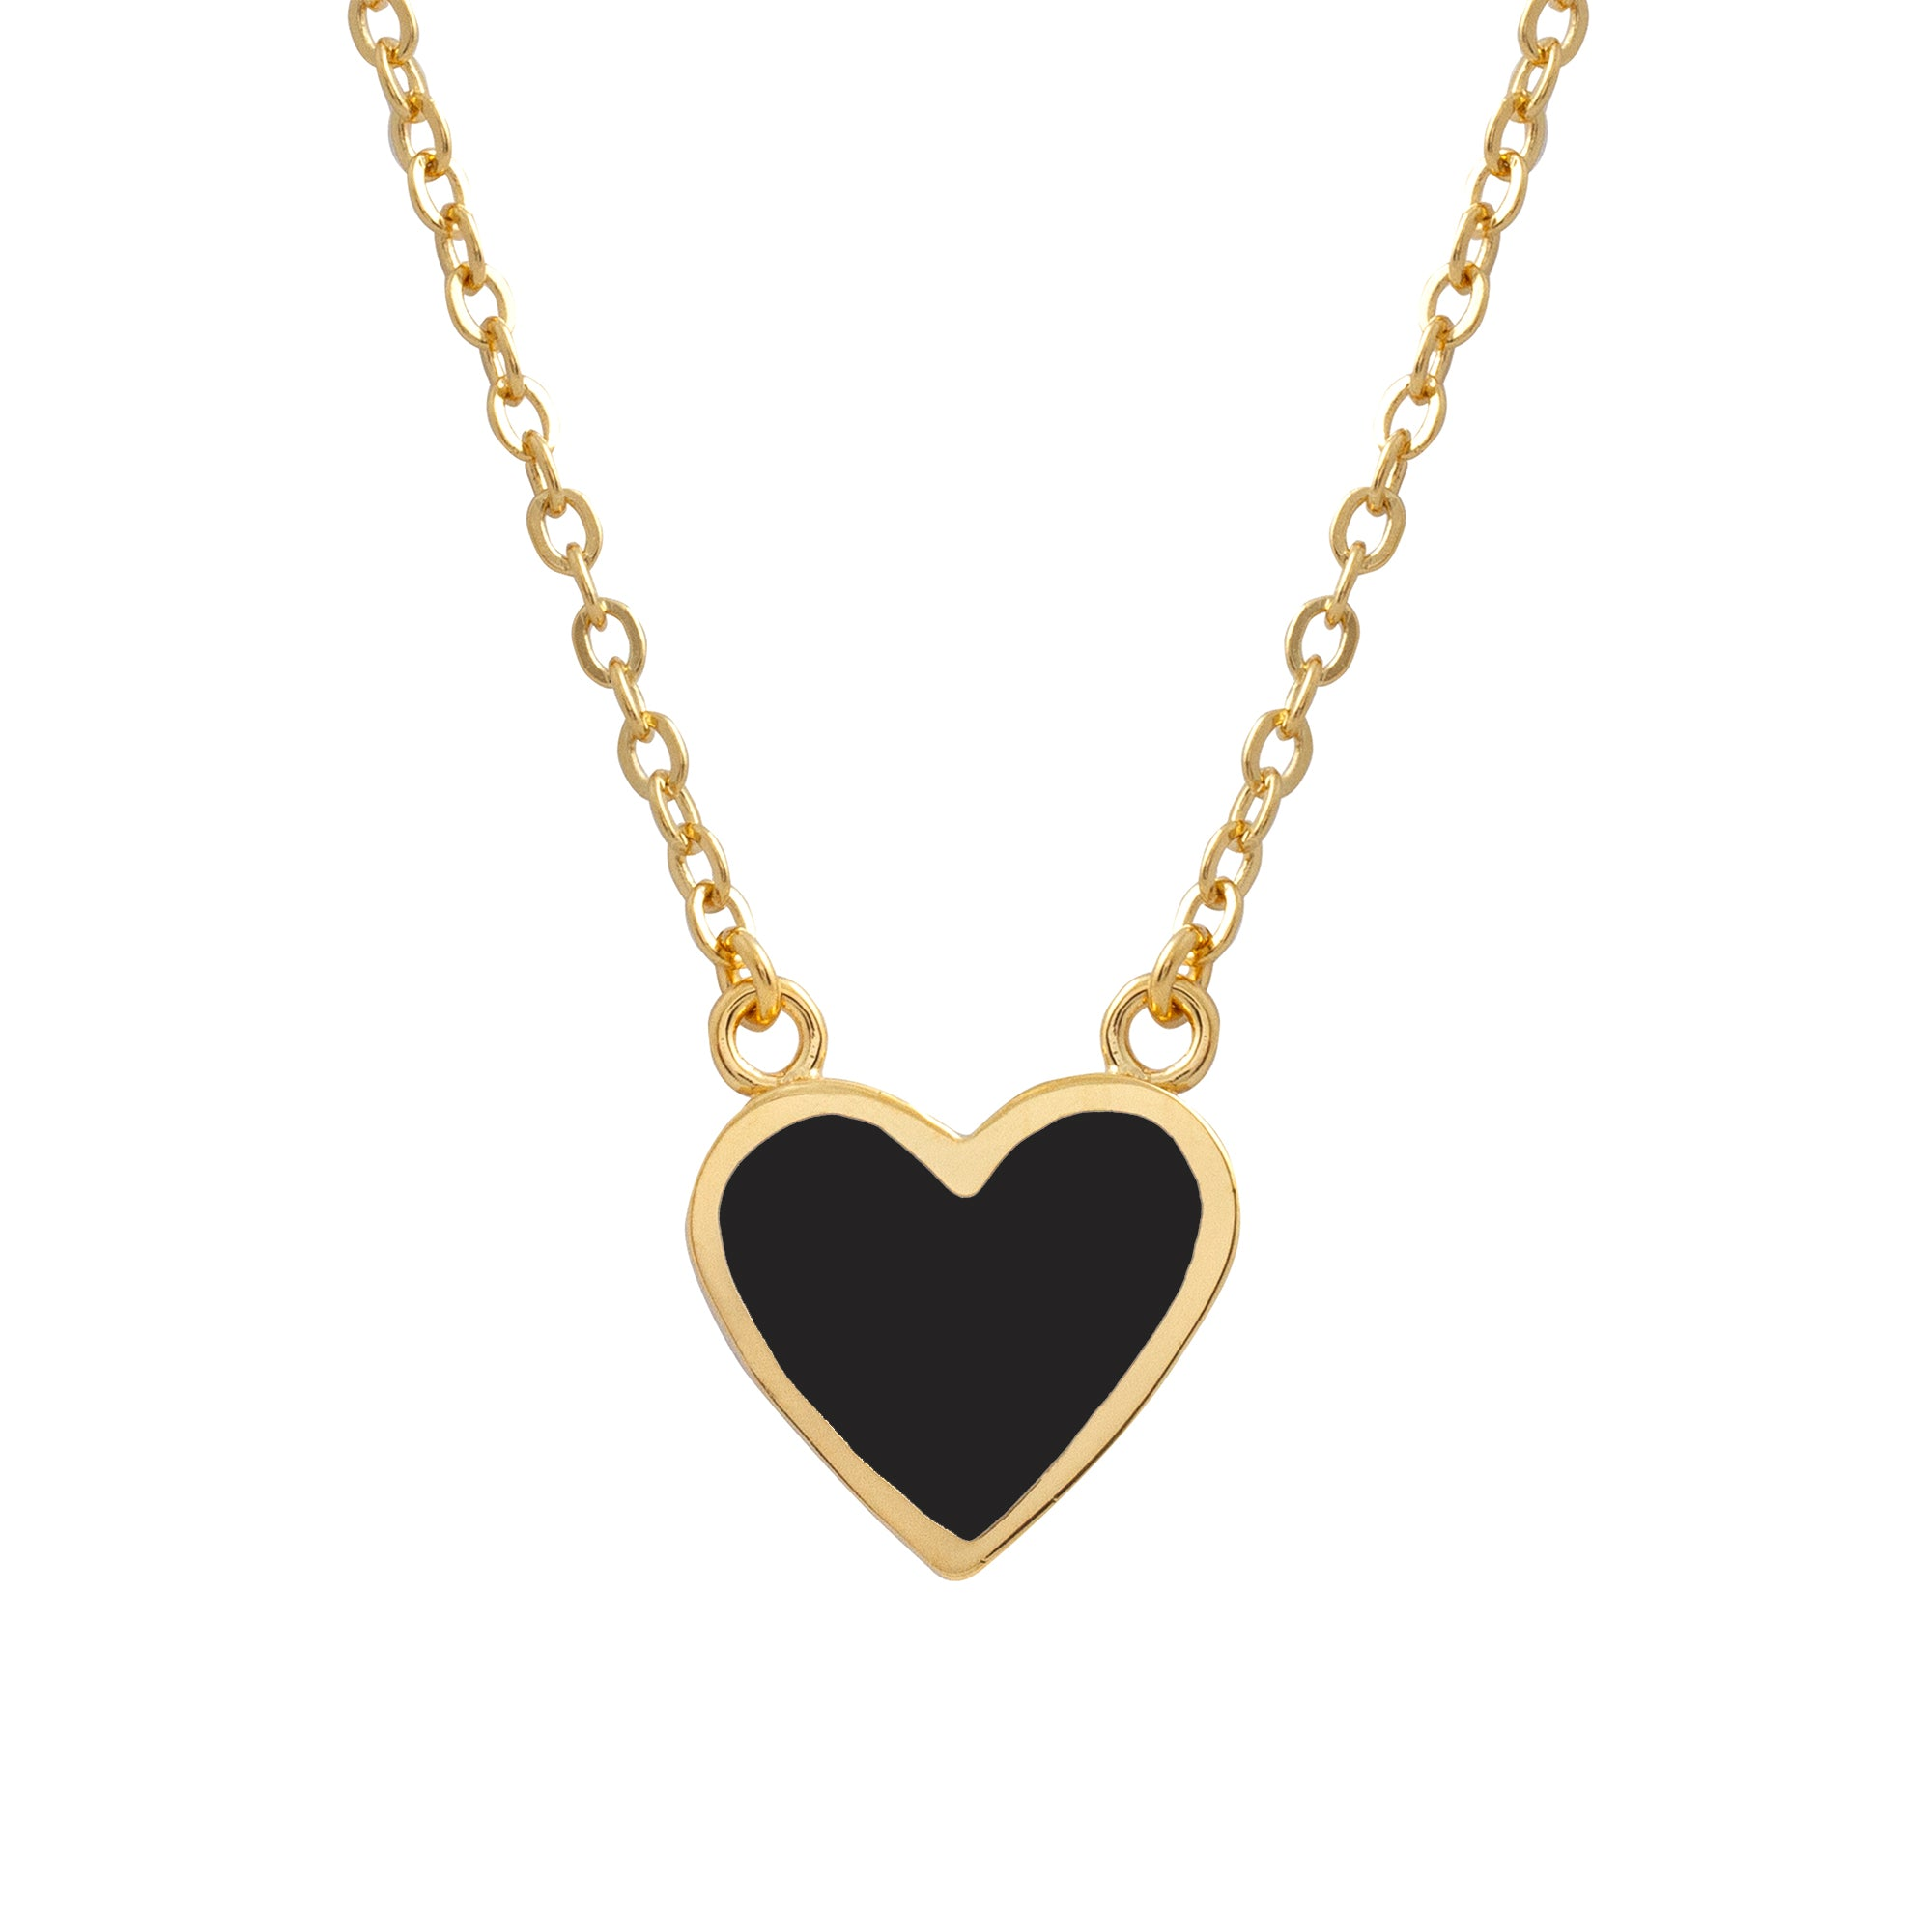 Heart Necklace Black